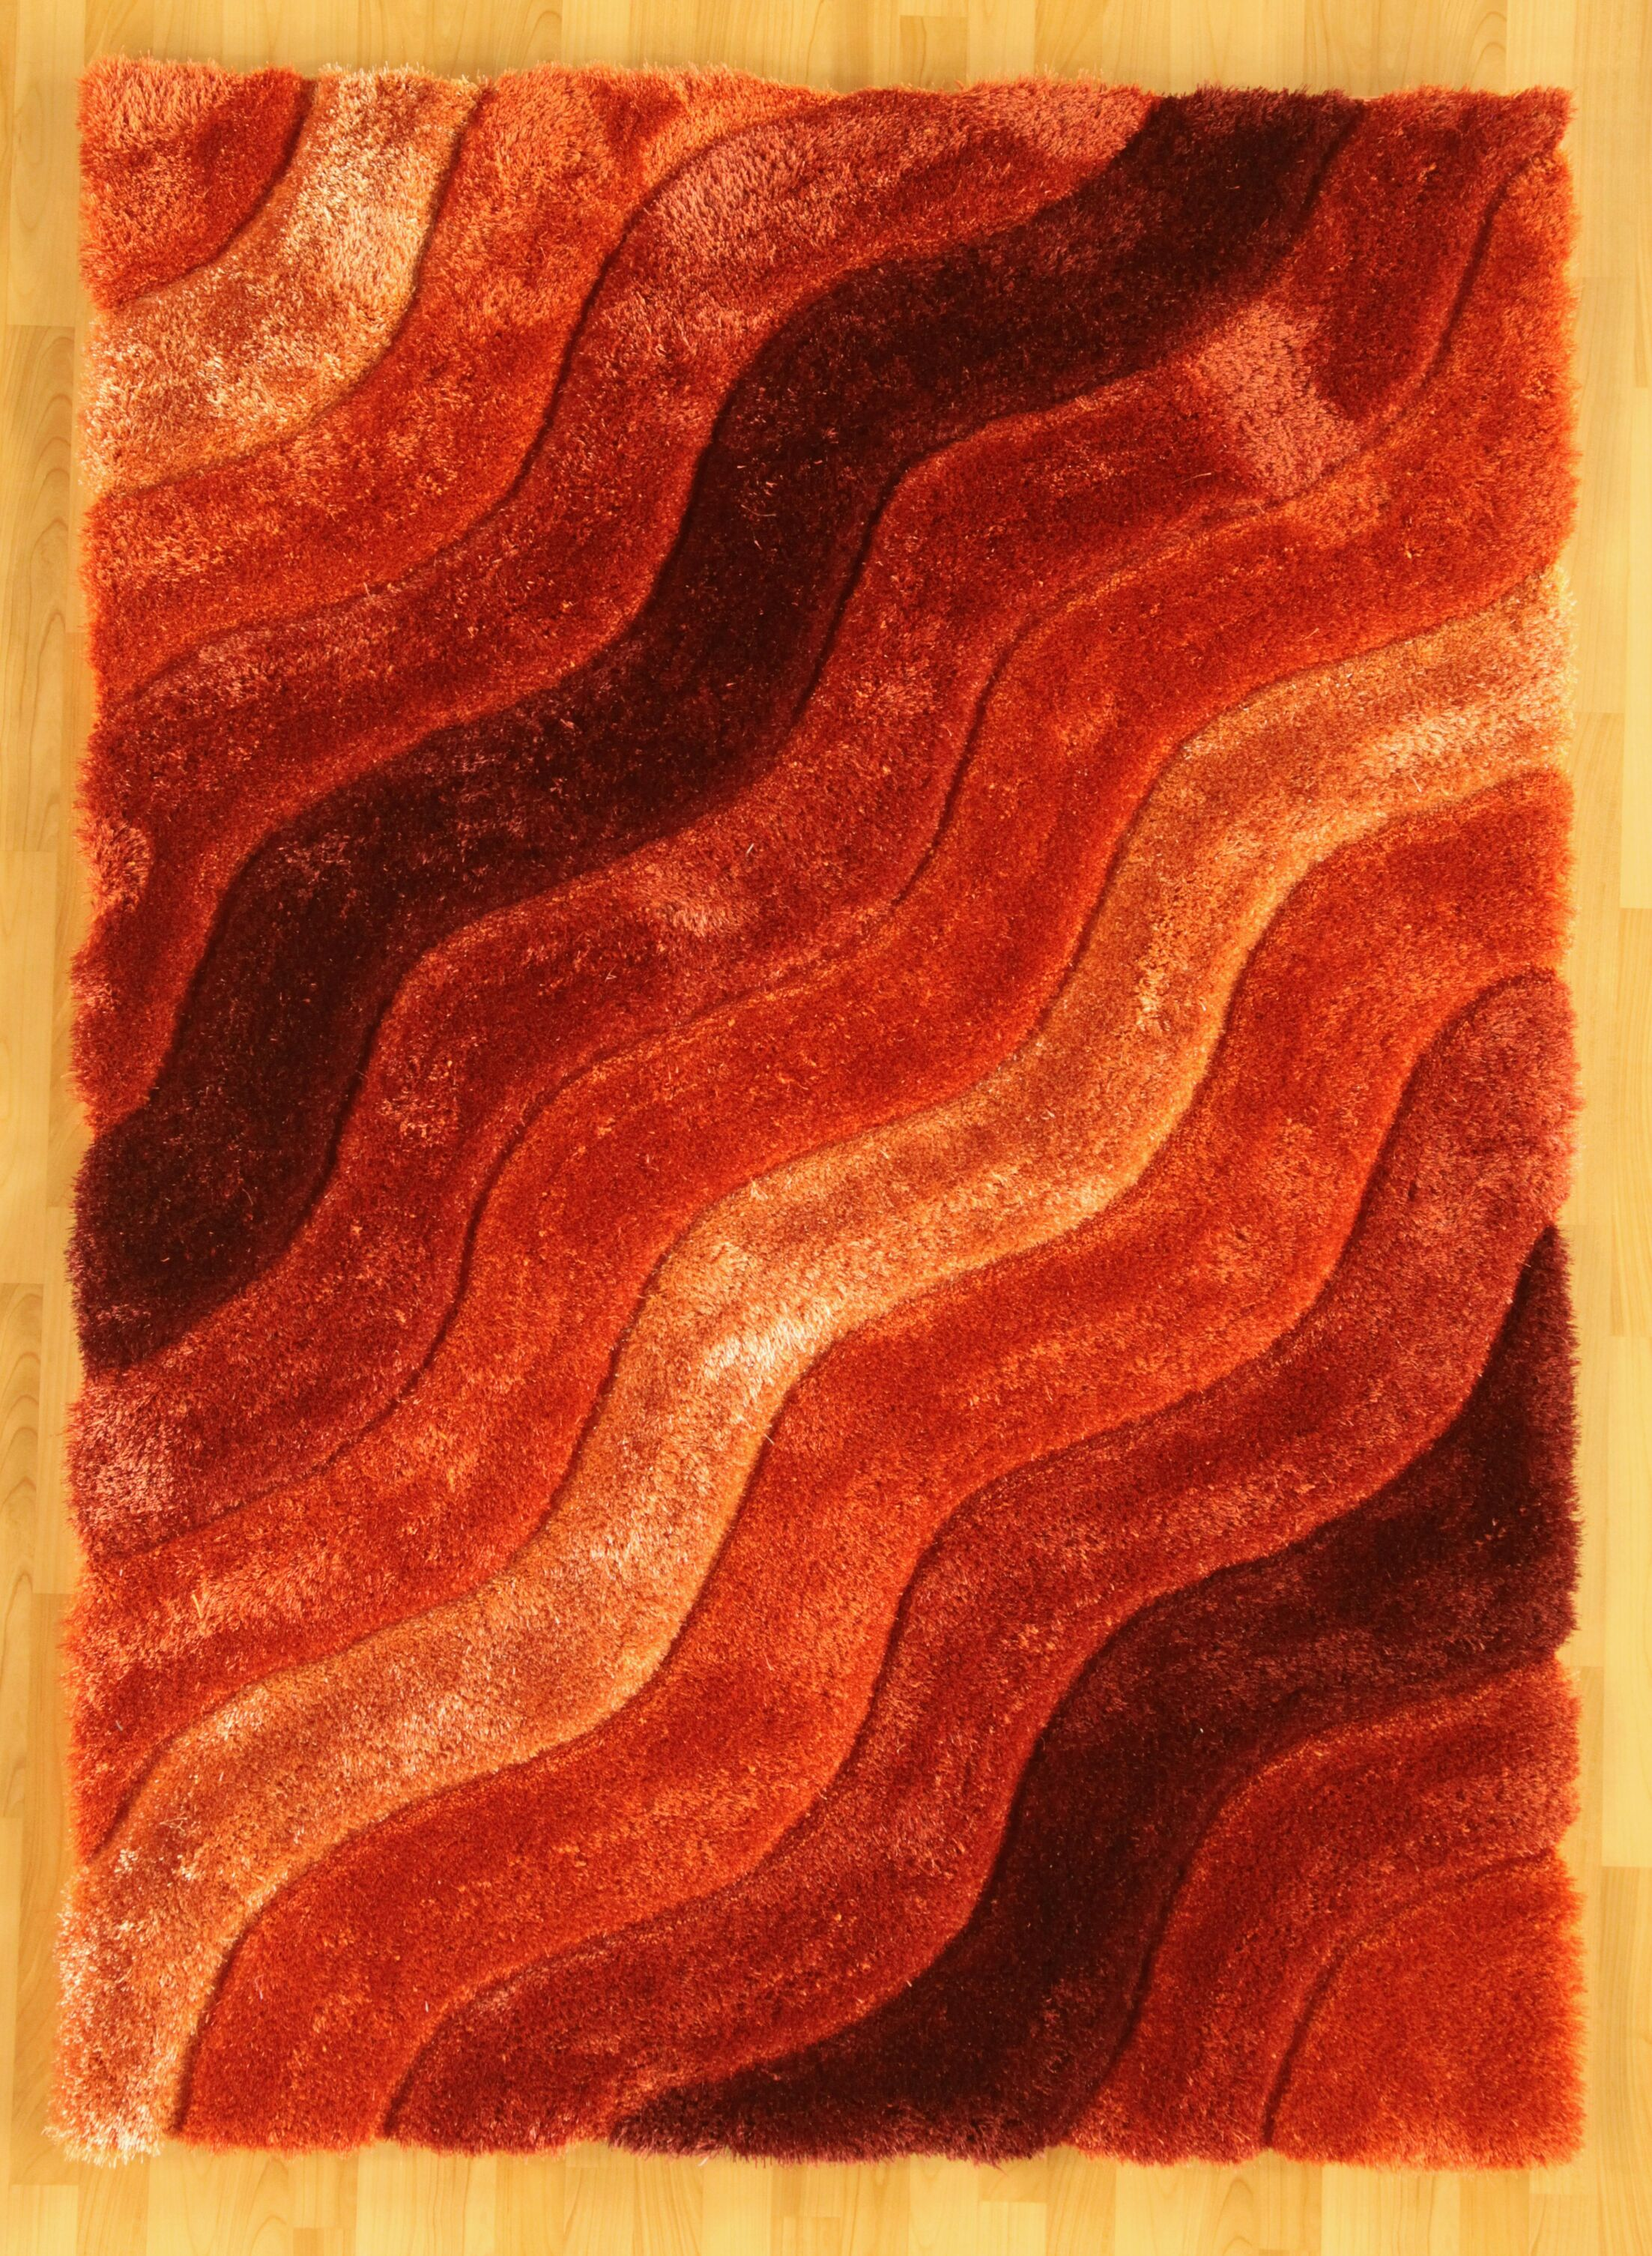 Hand-Tufted Orange/Red Area Rug Rug Size: Rectangle 5' x 7'